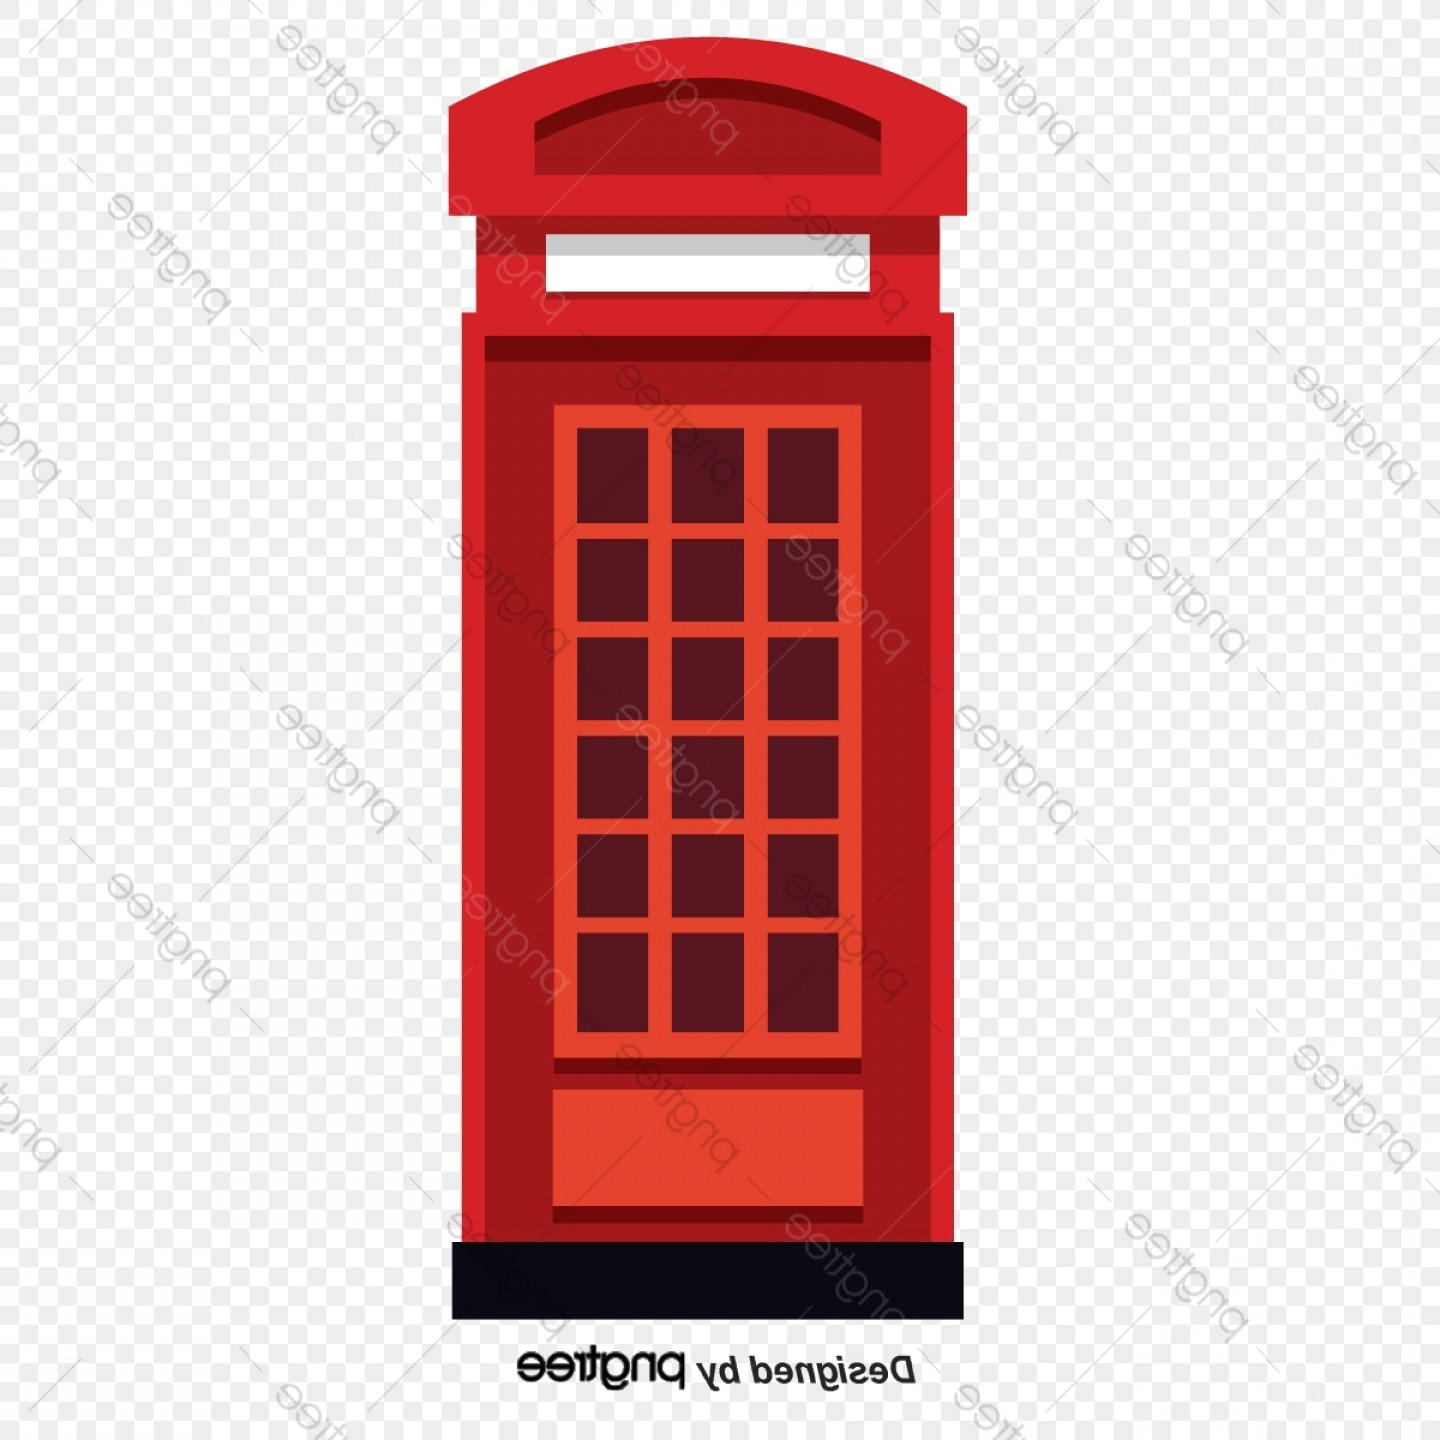 Commercial Booth Vector: Three Dimensional Simplicity Of Special Telephone Booths In Britain